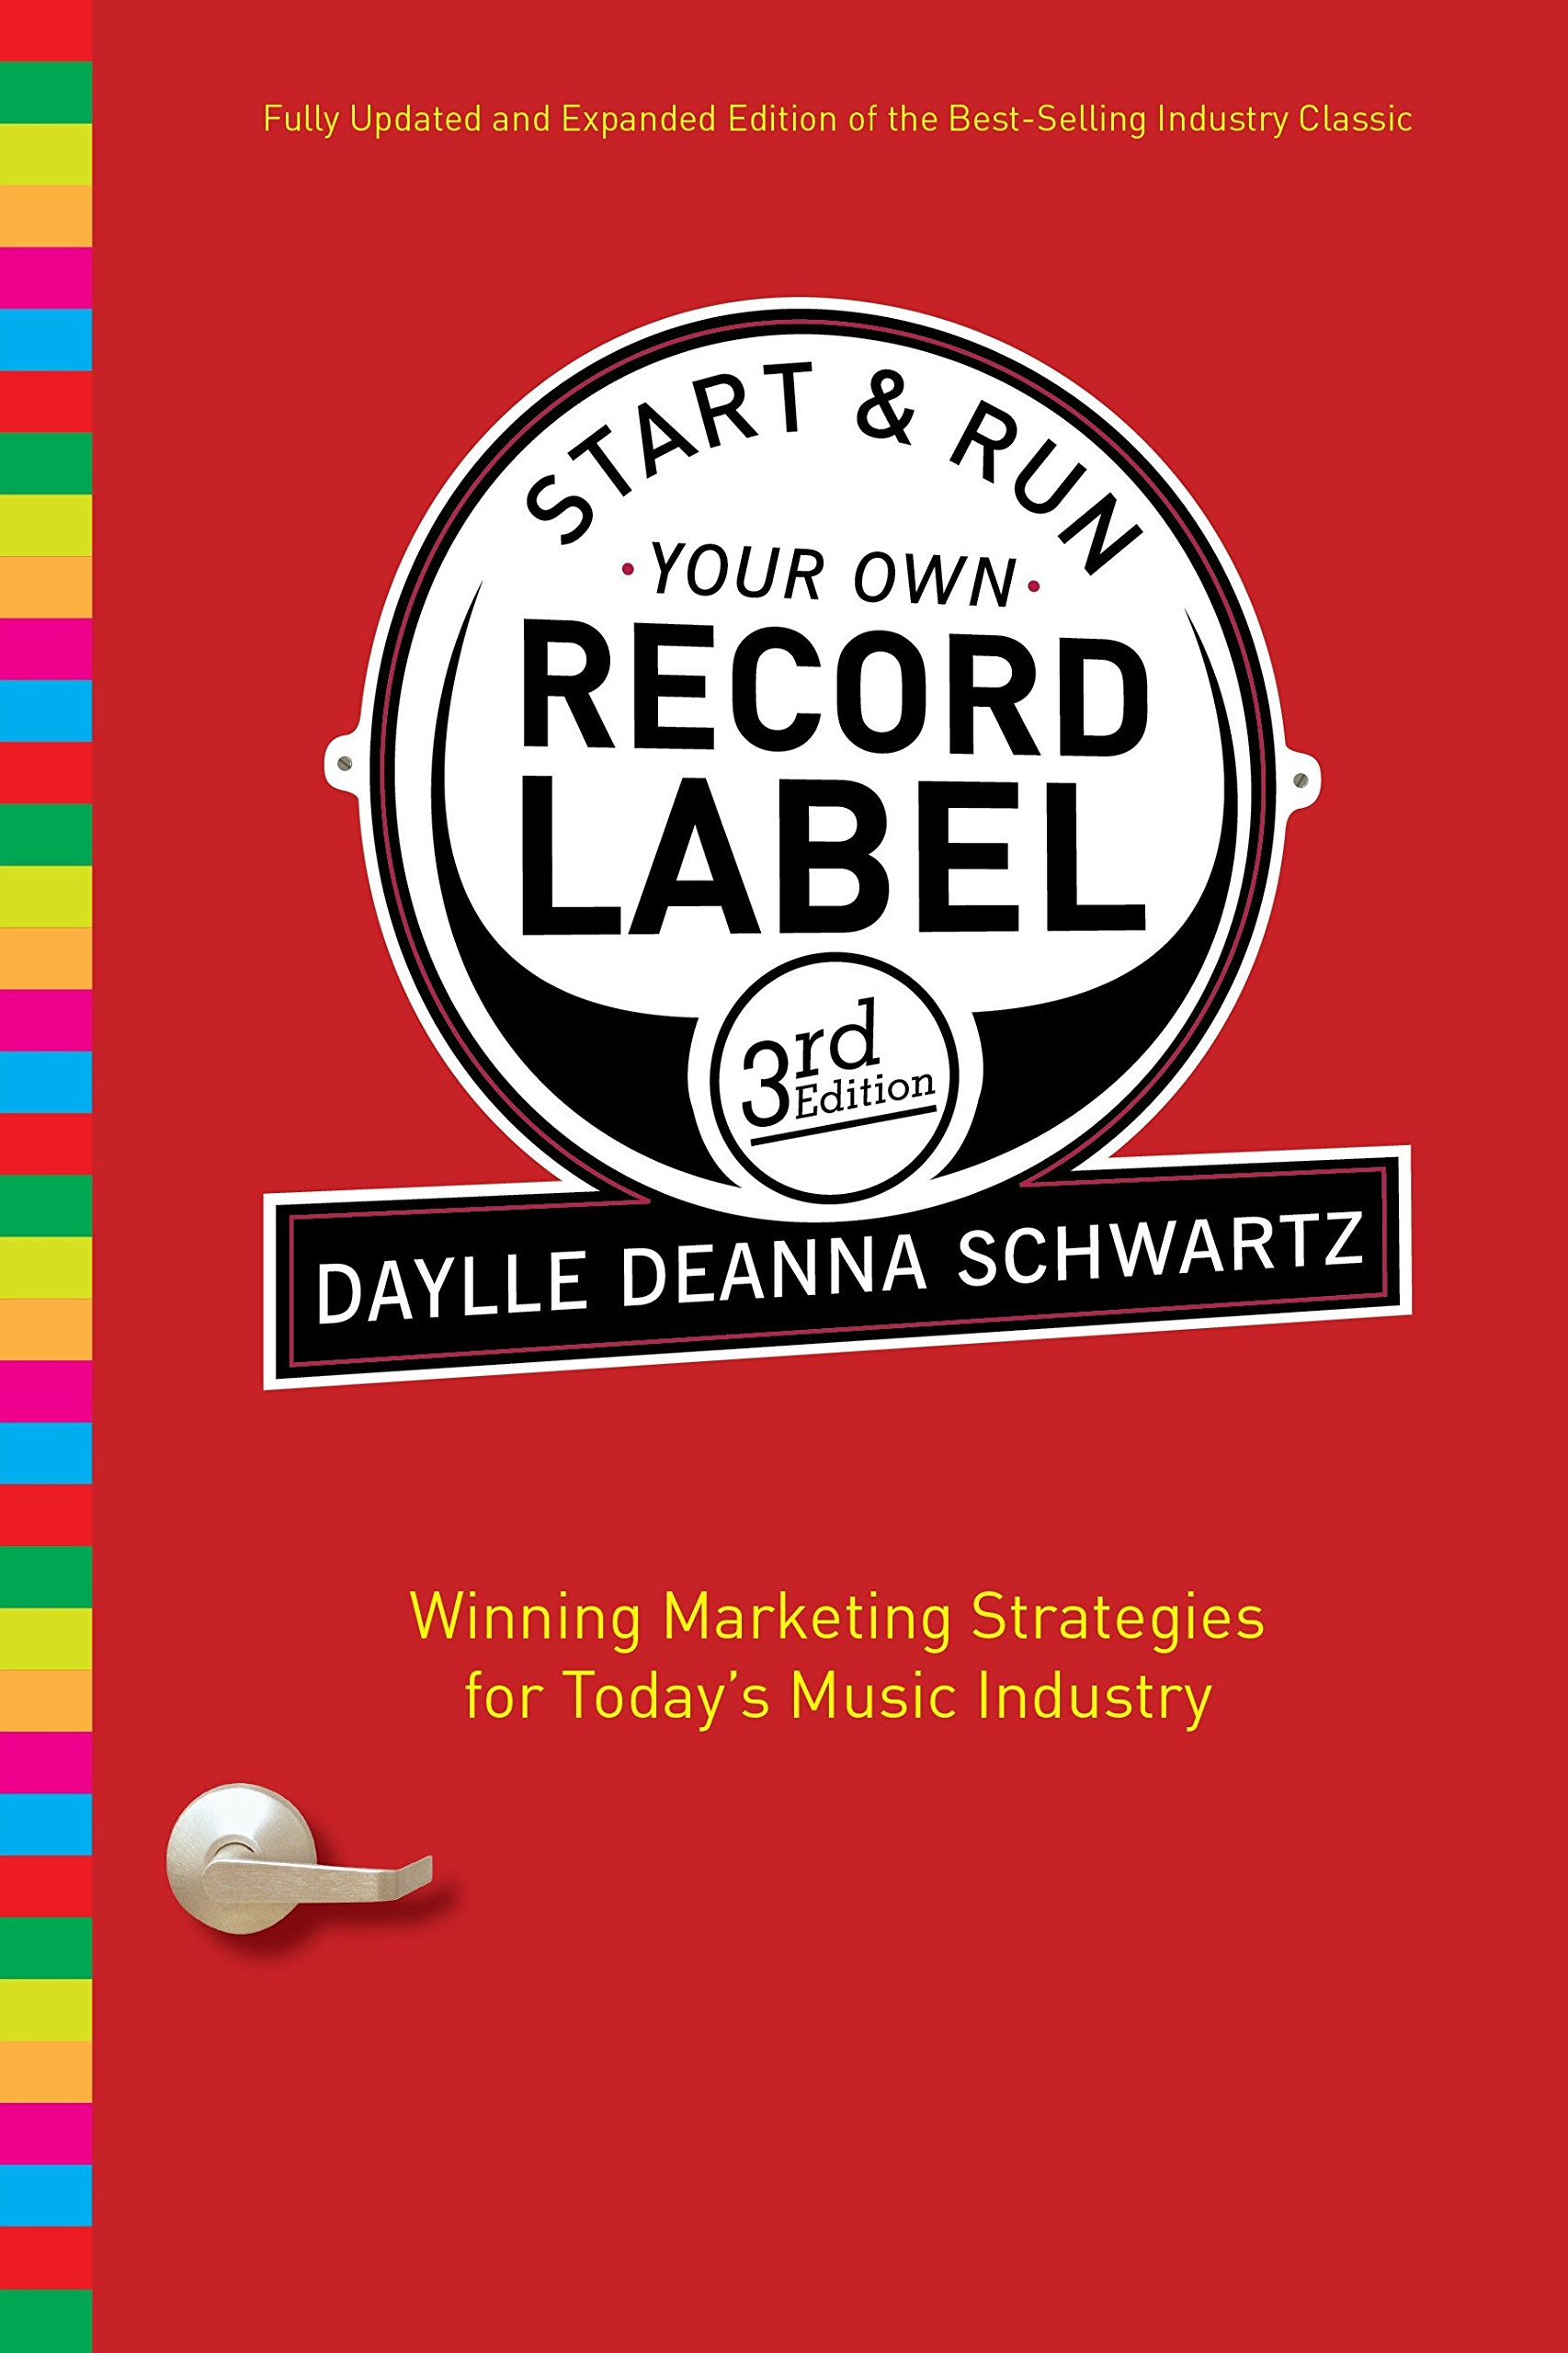 Download Start and Run Your Own Record Label, Third Edition: Winning Marketing Strategies for Today's Music Industry (Start & Run Your Own Record Label) ebook